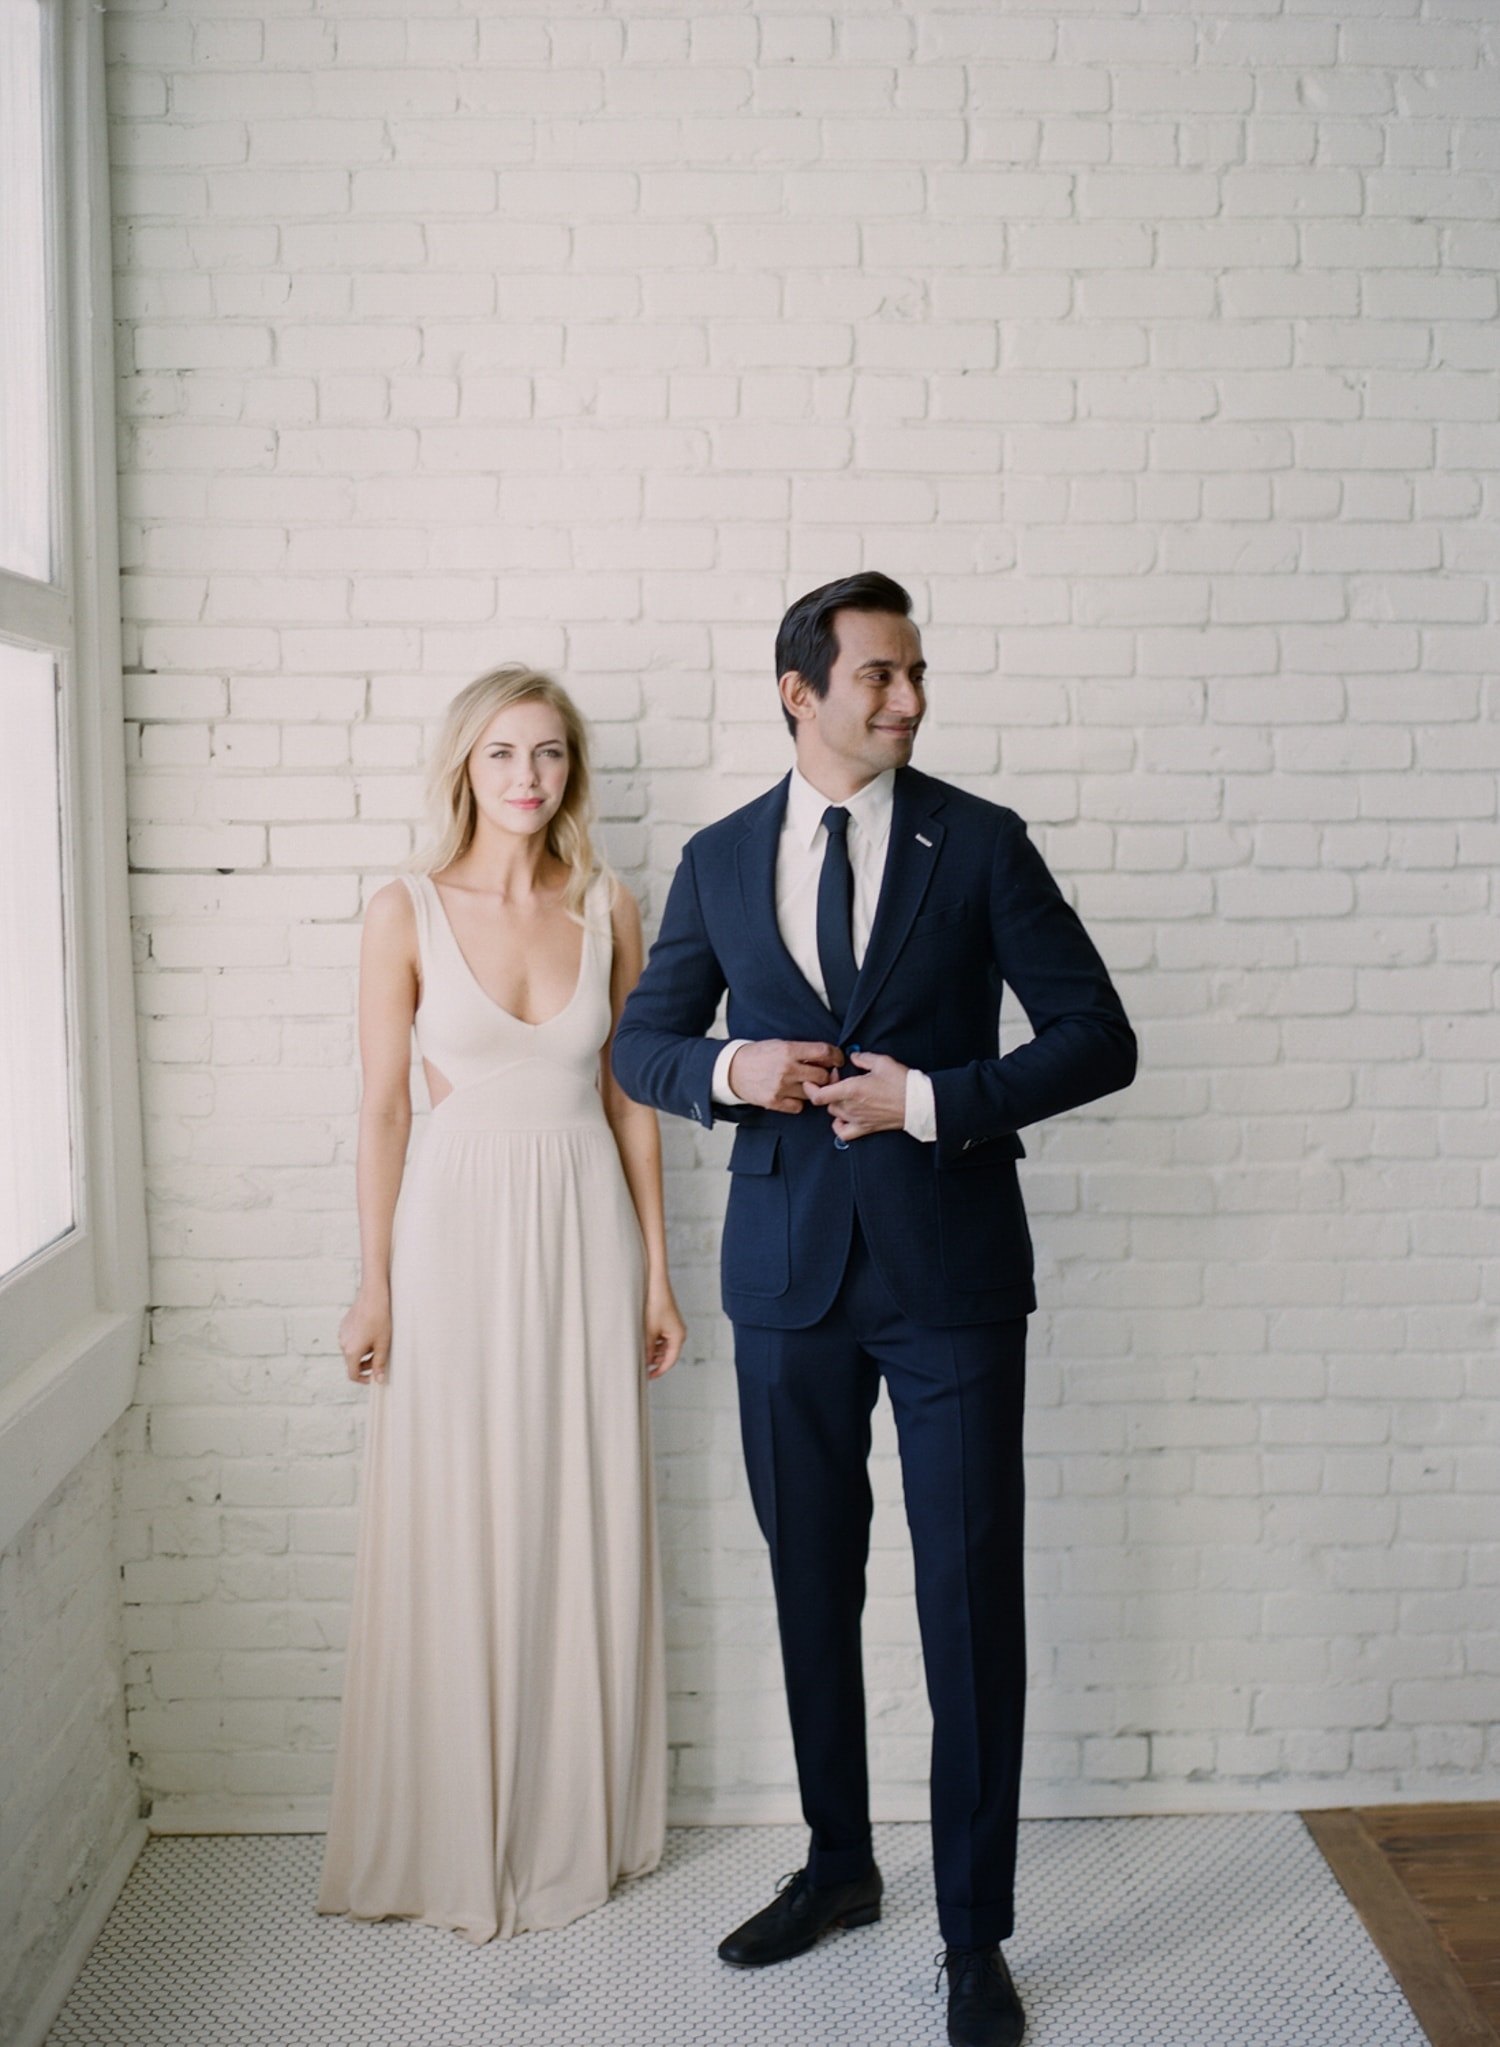 ONE_ELEVEN_EAST_MODERN_ENGAGEMENT_SHOOT_AUSTIN_TX_BY_MATTHEW_MOORE_PHOTOGRAPHY_00020.jpg